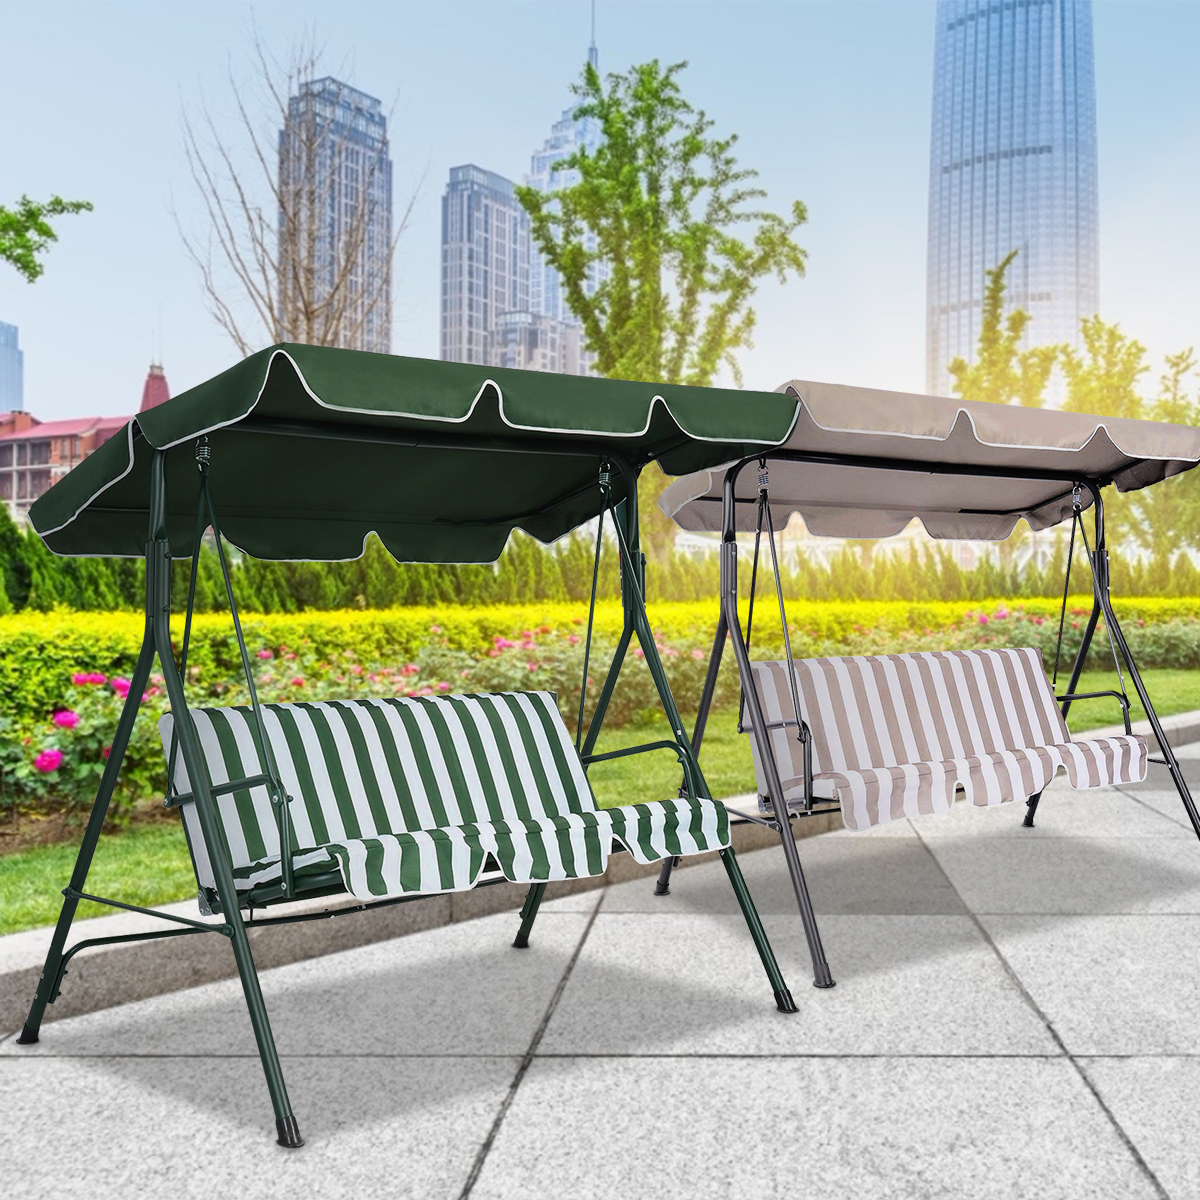 Swing-Top-Cover-Canopy-Replacement-Porch-Patio-Outdoor-66-034-x45-034-75-034-x52-034-77-034-x43-034 thumbnail 6